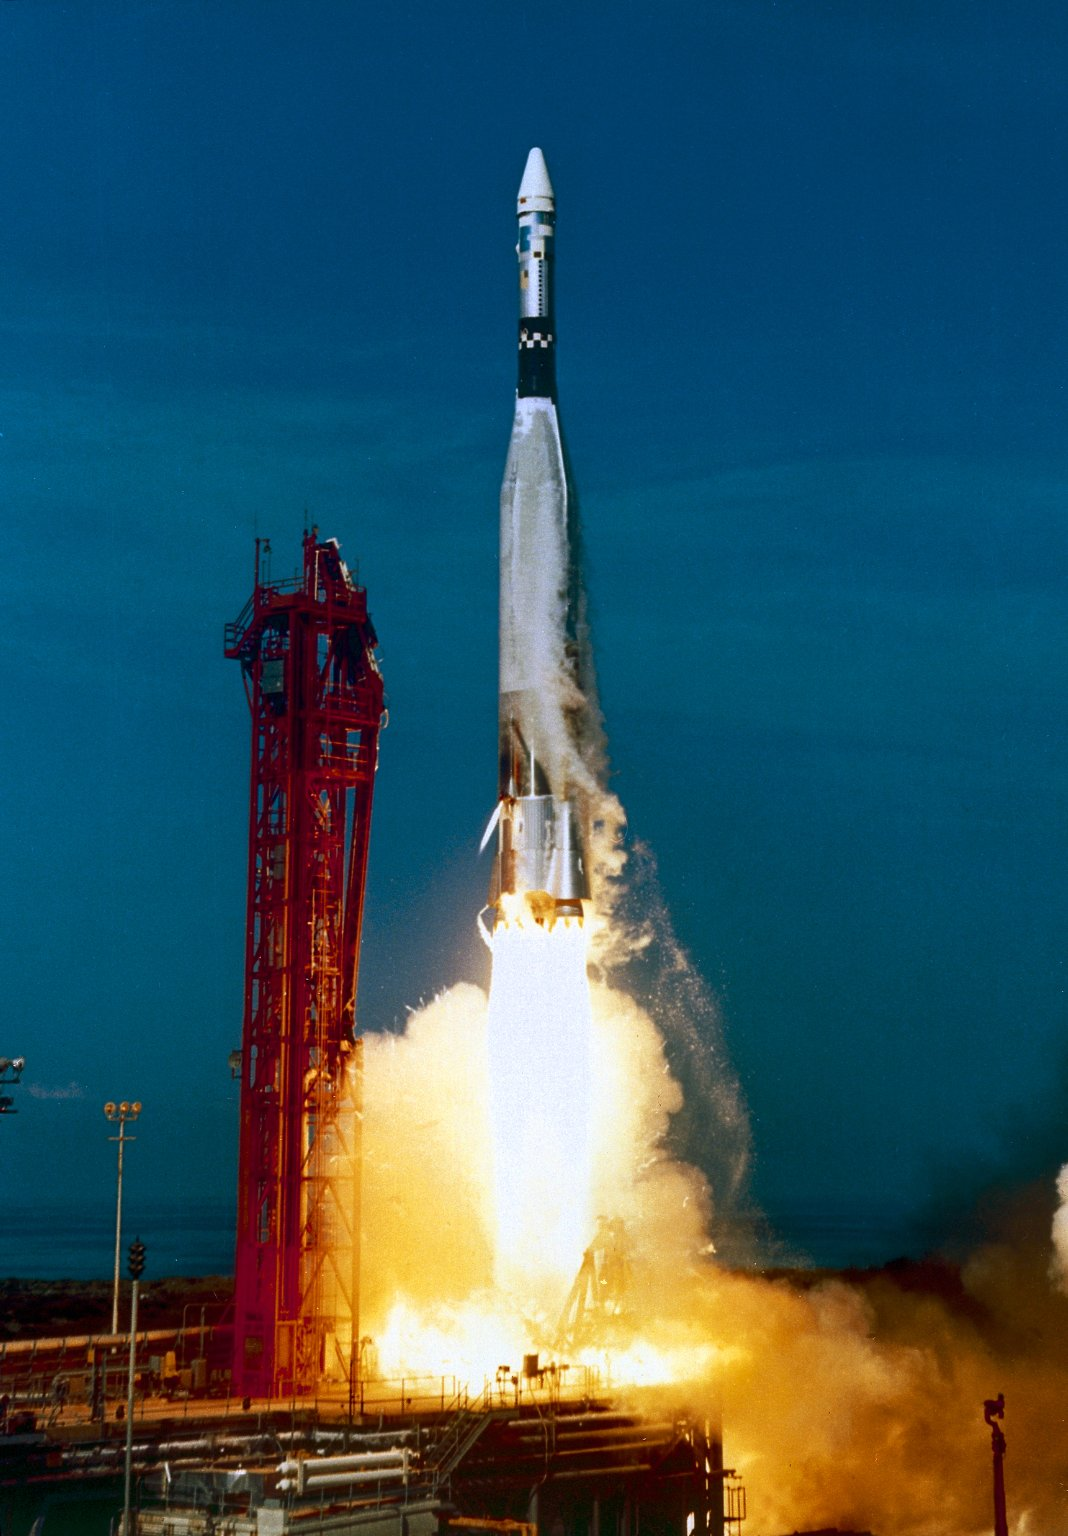 The launch of an Atlas-Agena booster